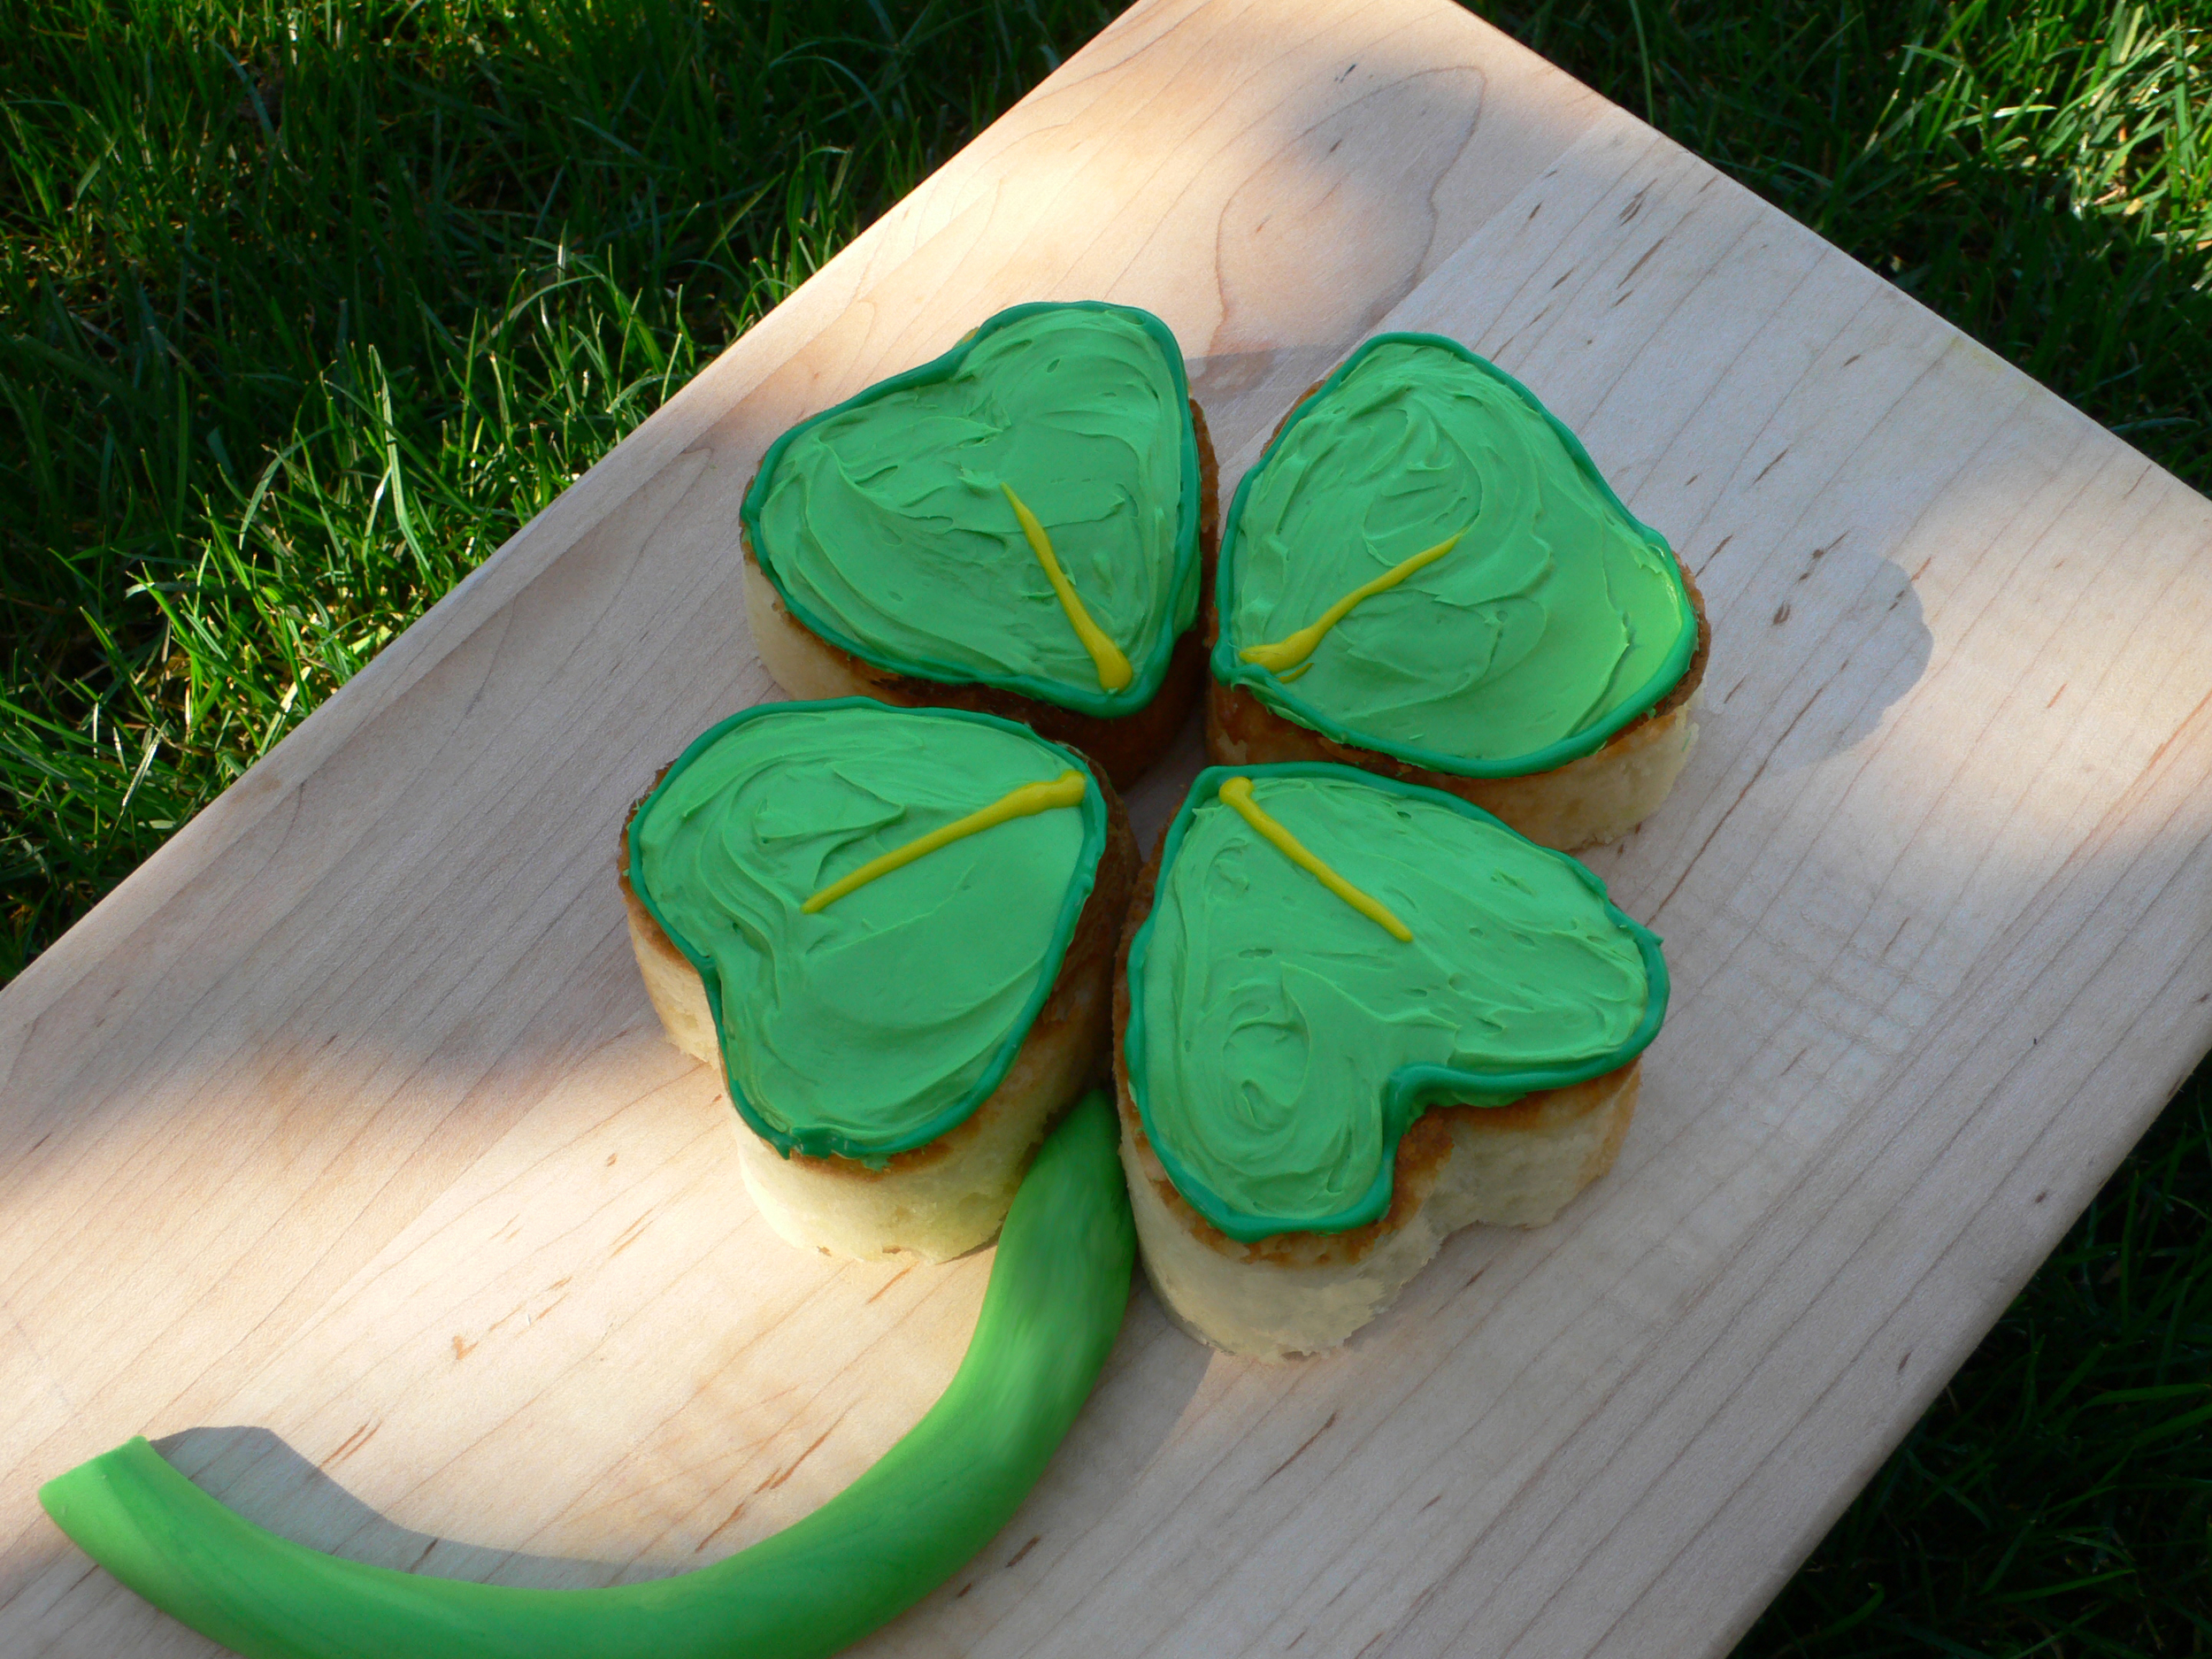 The Biggest Luckiest Clover Cake of Them All!